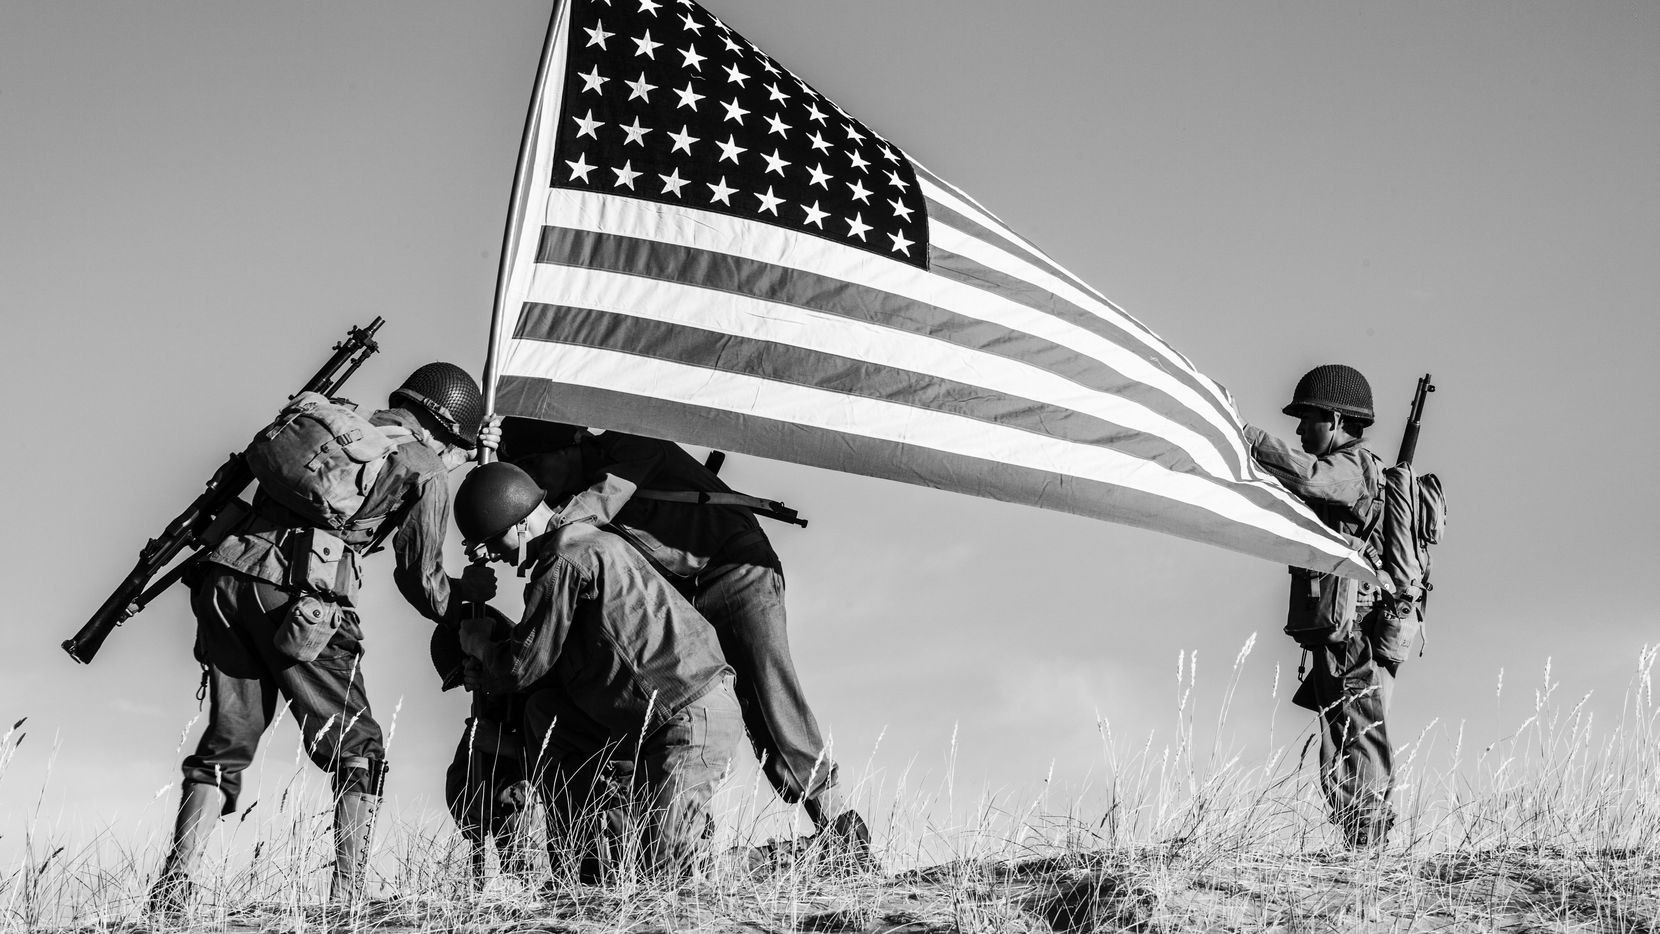 The celebration of Veterans Day on November 11, 2020 also includes recognizing the journey to inclusion in our armed forces.